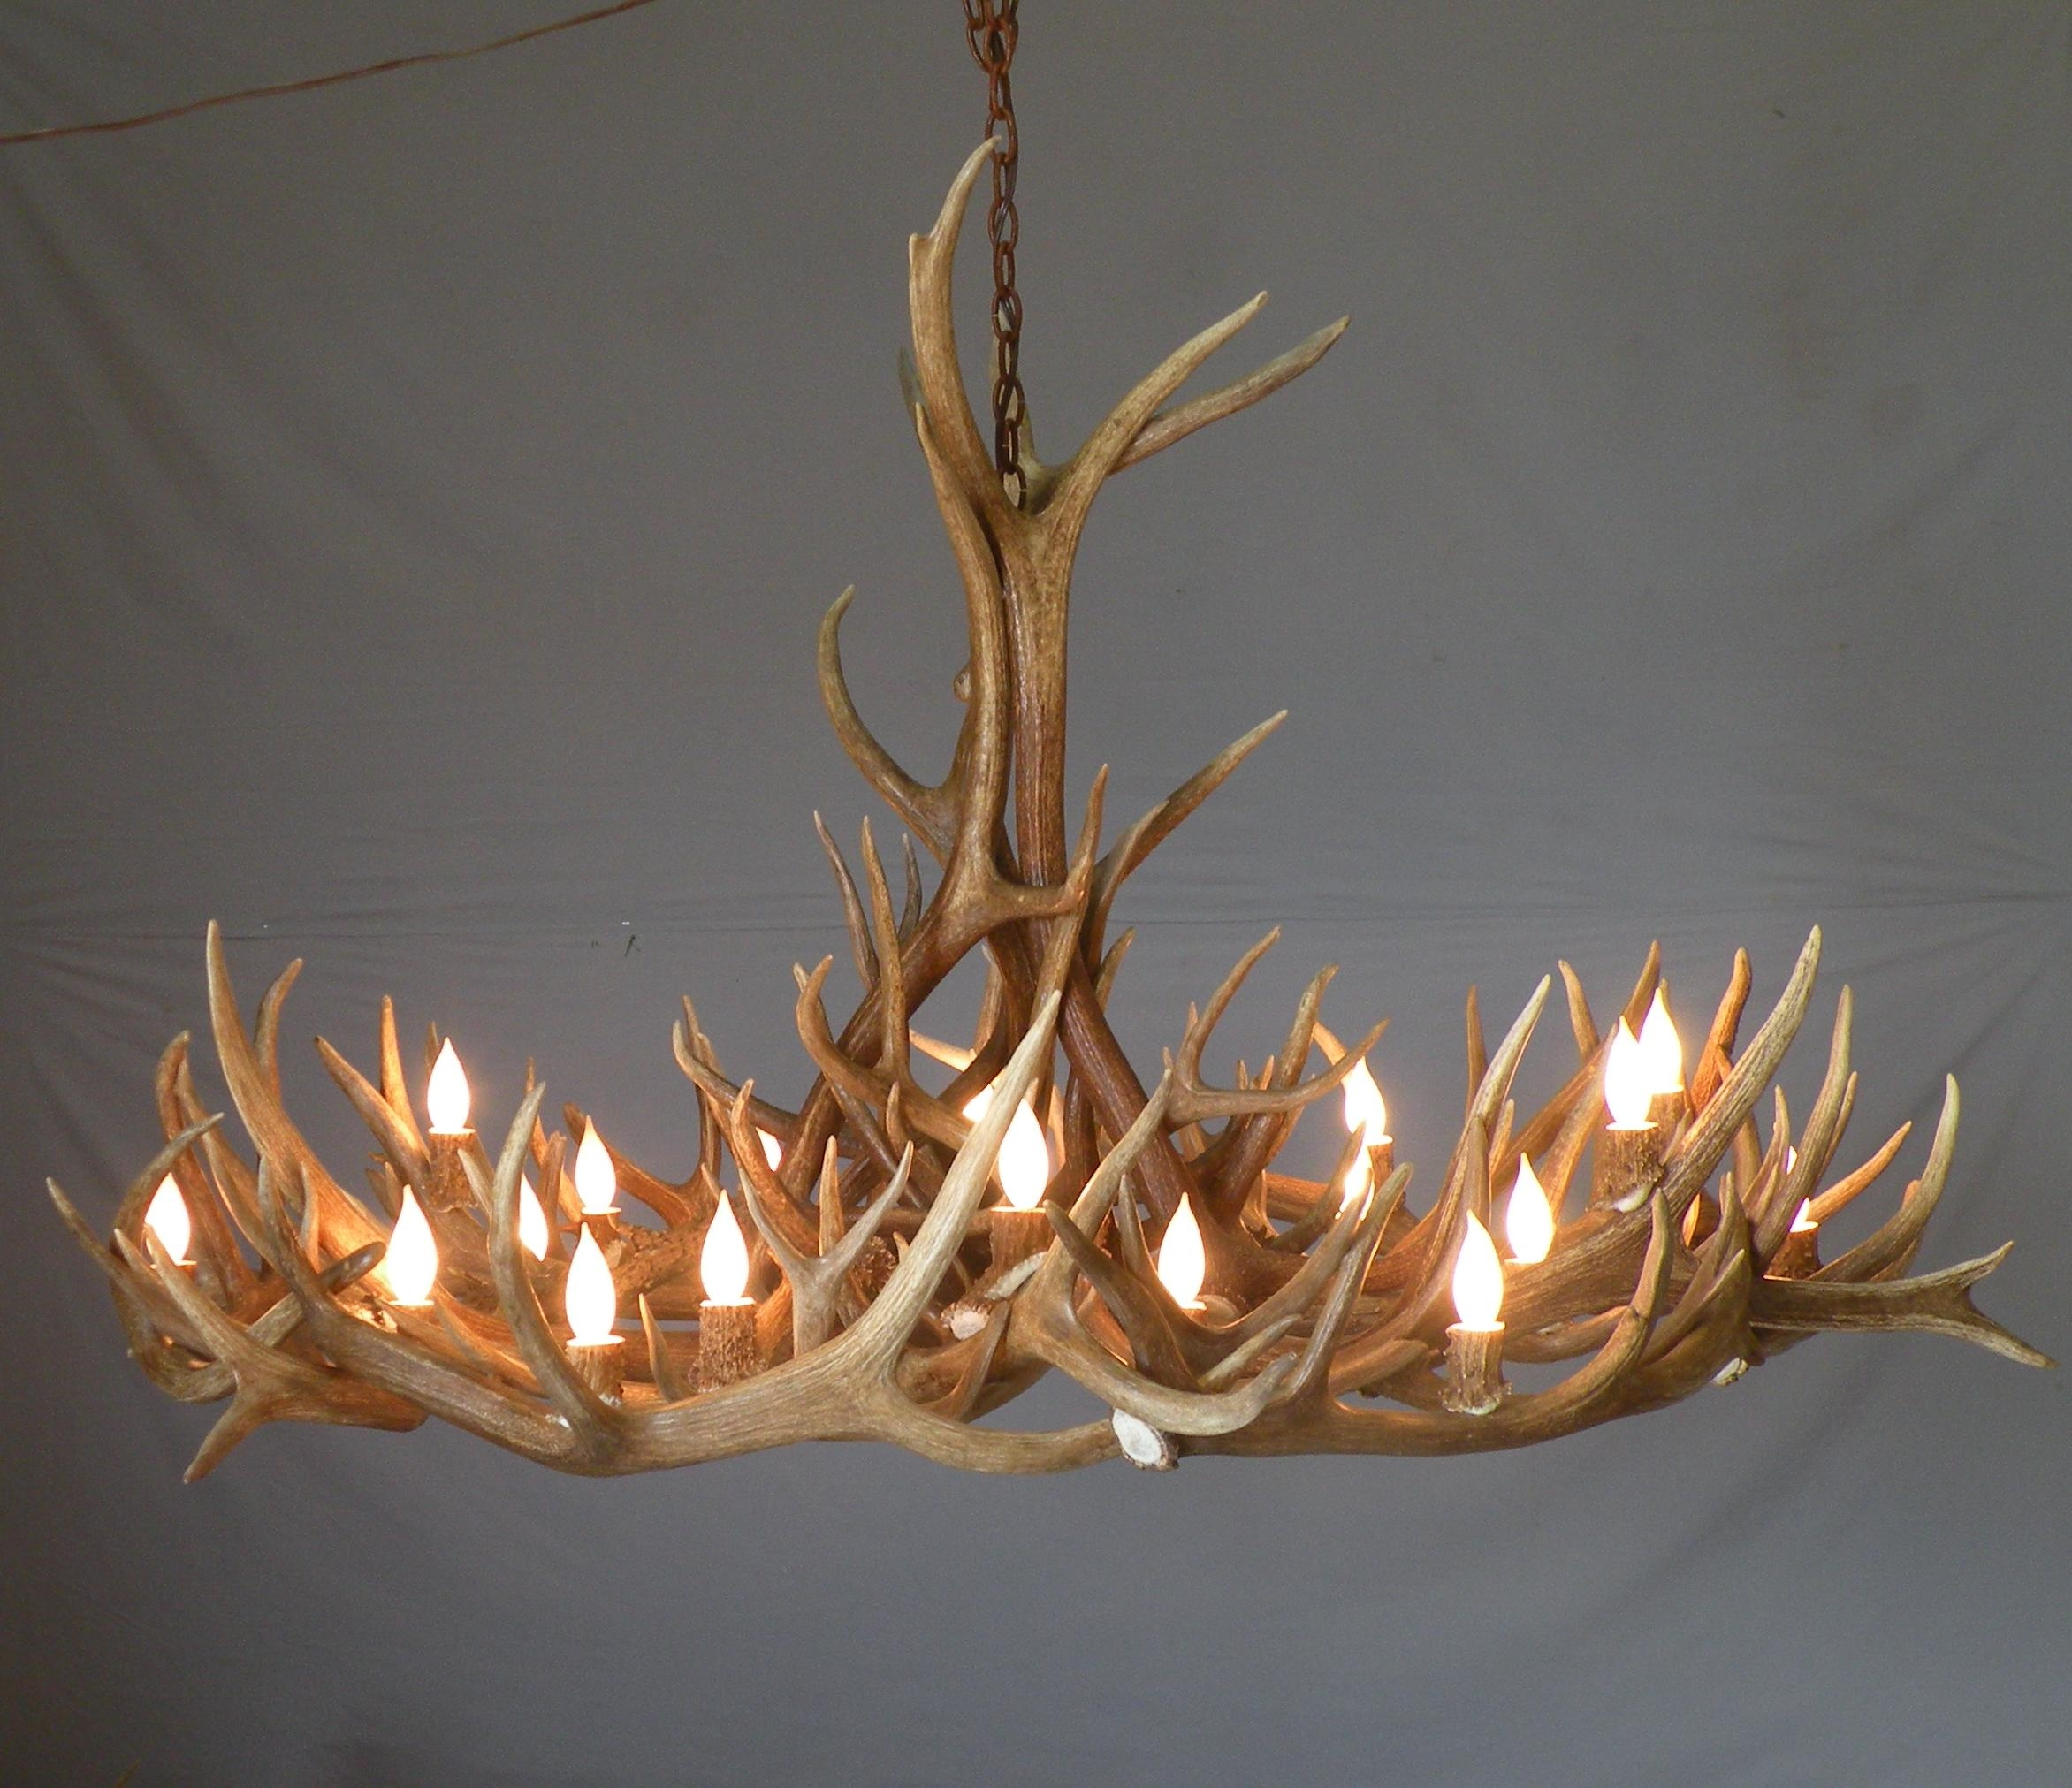 Antler Chandeliers Wdc Returning Artist Peak Antlers Accents Throughout Antler Chandeliers And Lighting (Image 5 of 15)